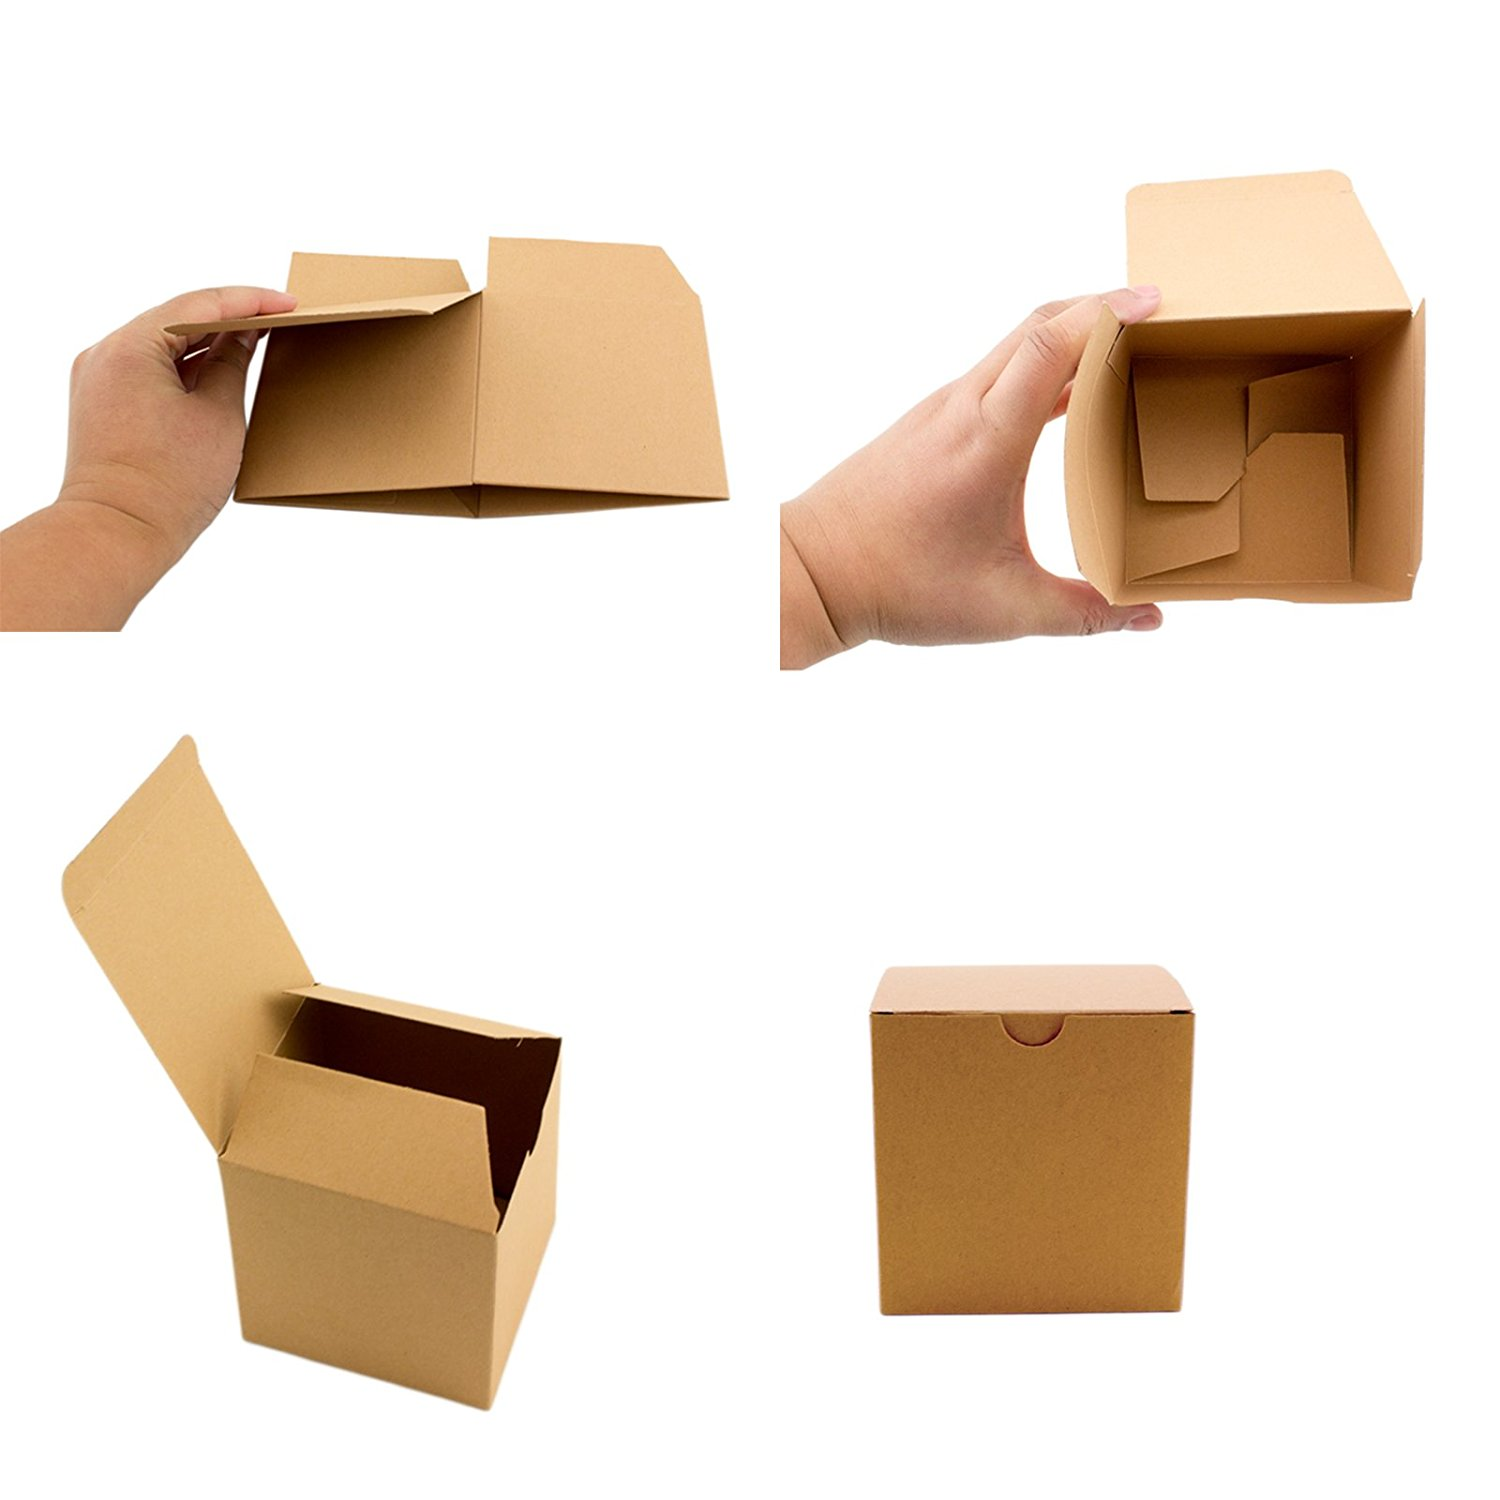 Details About Brown Kraft Paper Boxes Packaging Supplies Party Wedding Gift Boxes Bulk